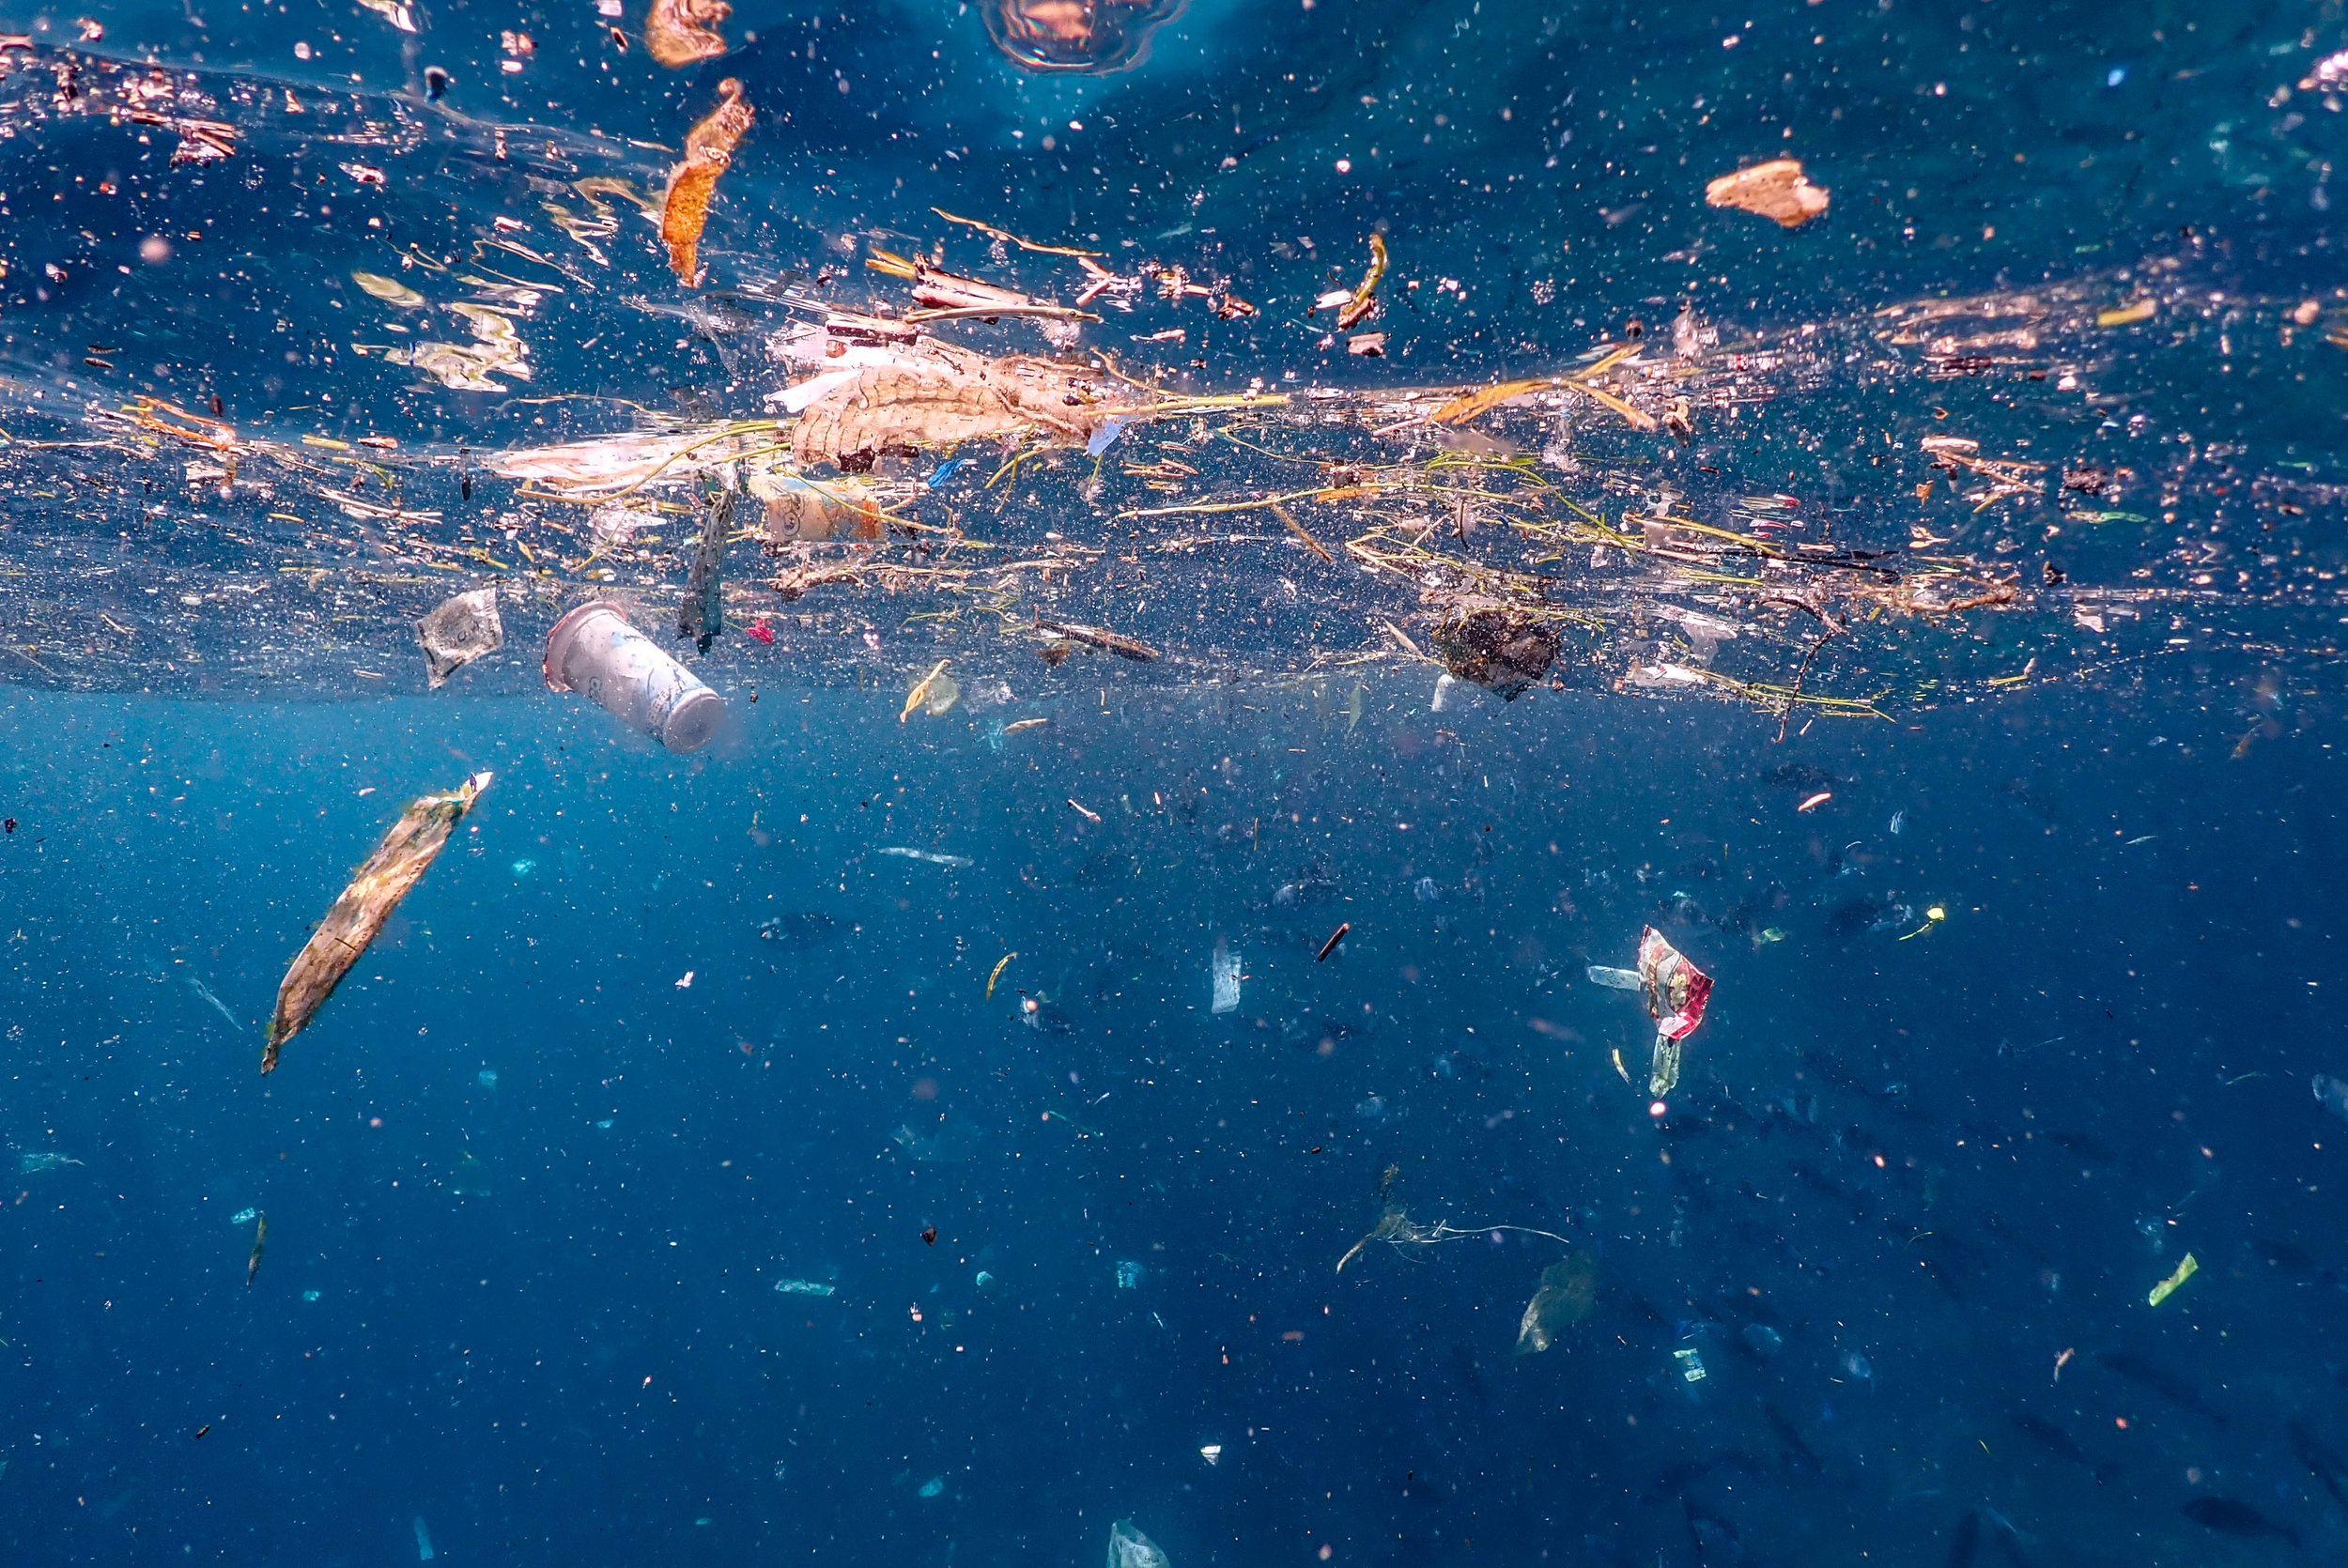 Plastic floating in the ocean can absorb chemicals and pollutants from the surrounding water. Photo: Brooke Pyke